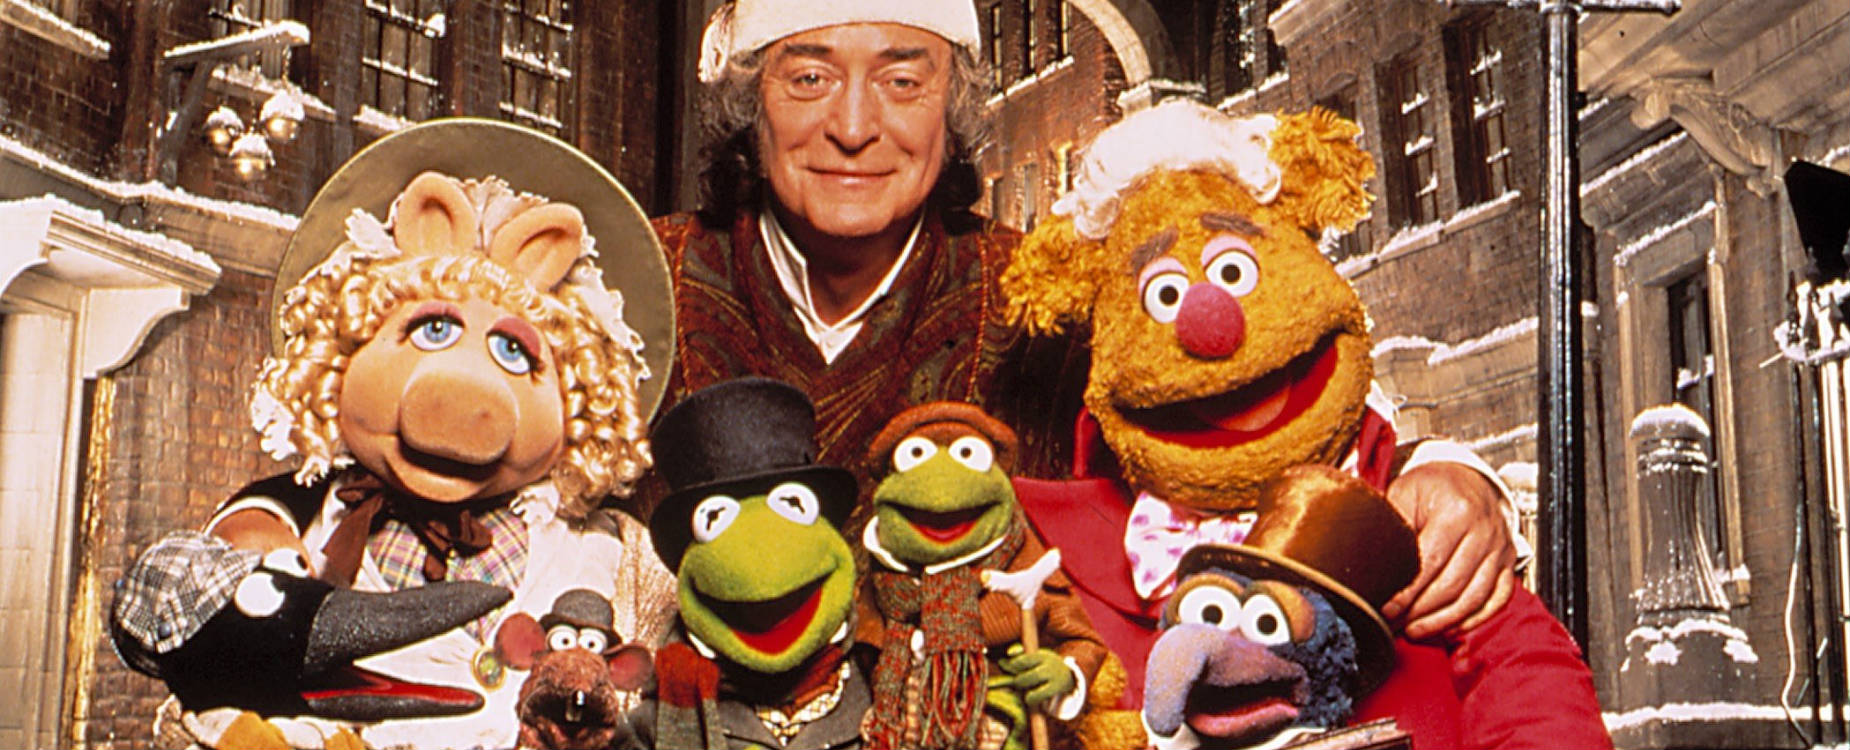 The Muppet Christmas Carol - publicity shot featuring Michael Caine.